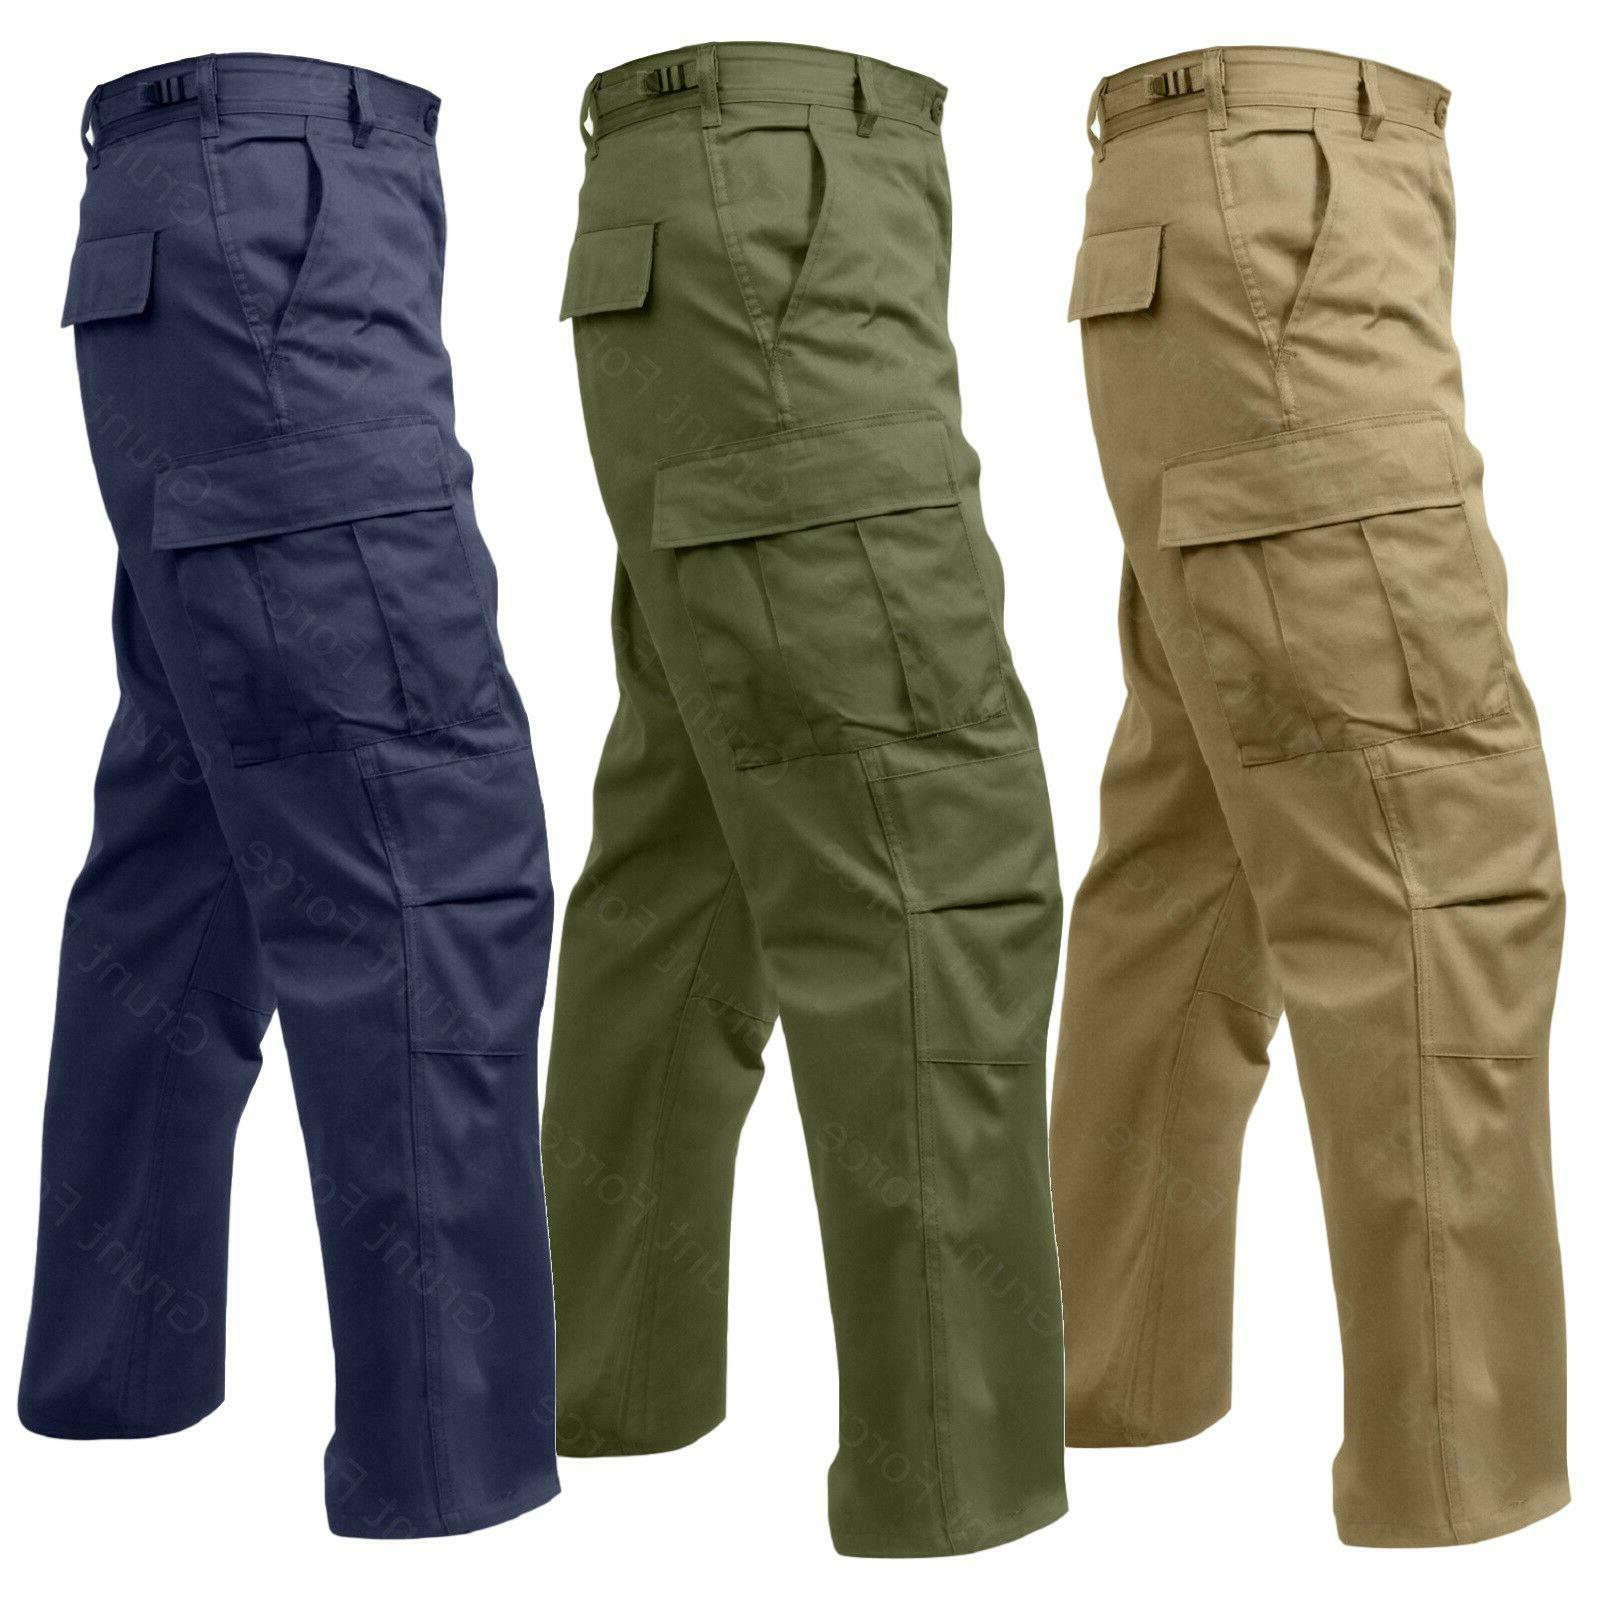 MILITARY TACTICAL FATIGUE TROUSERS